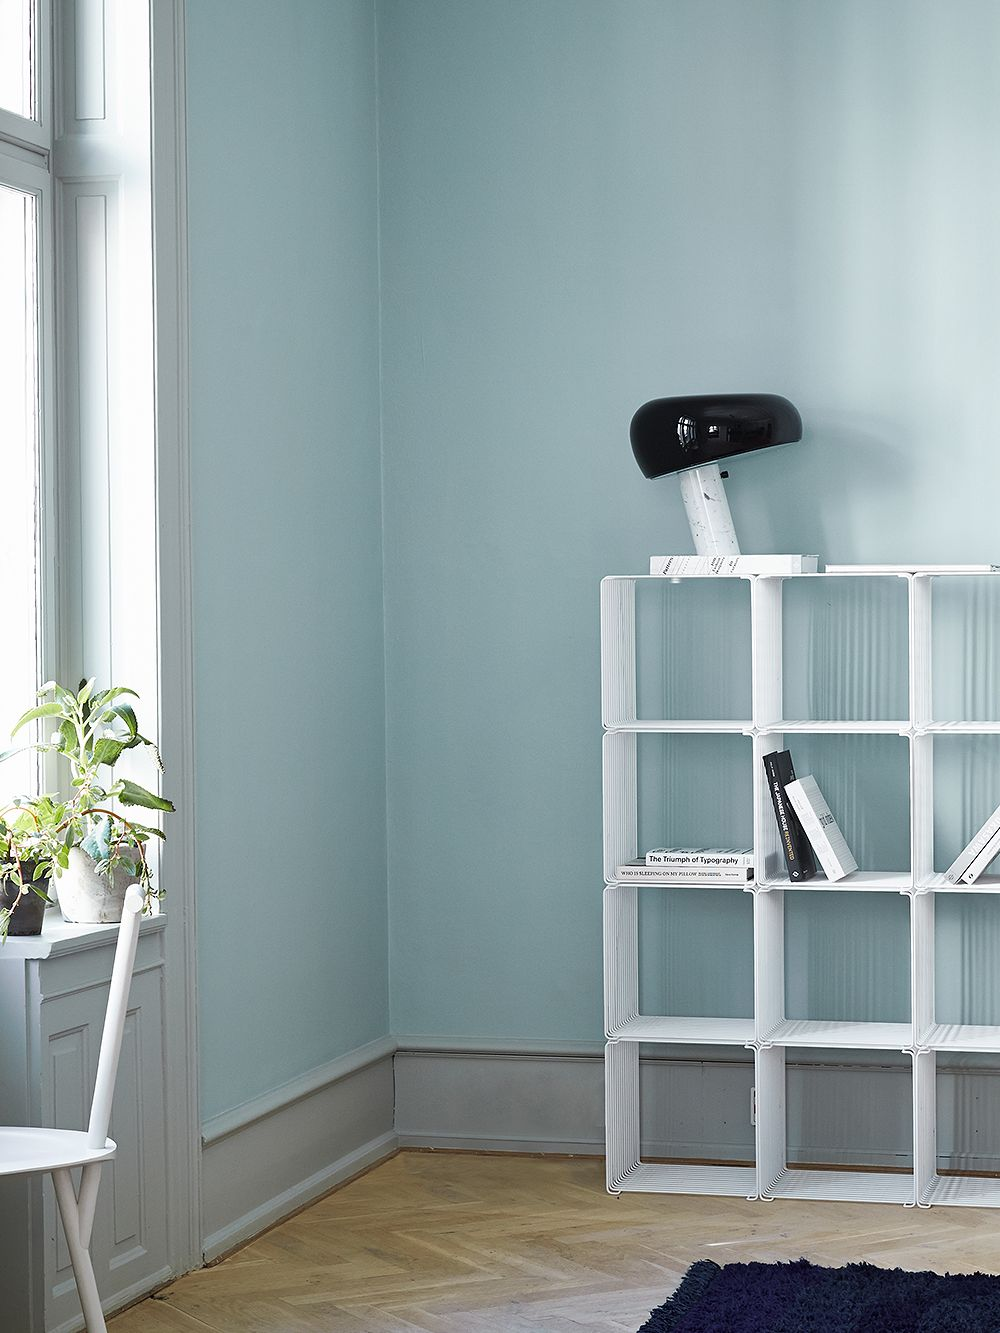 Snoopy table lamp by Flos.